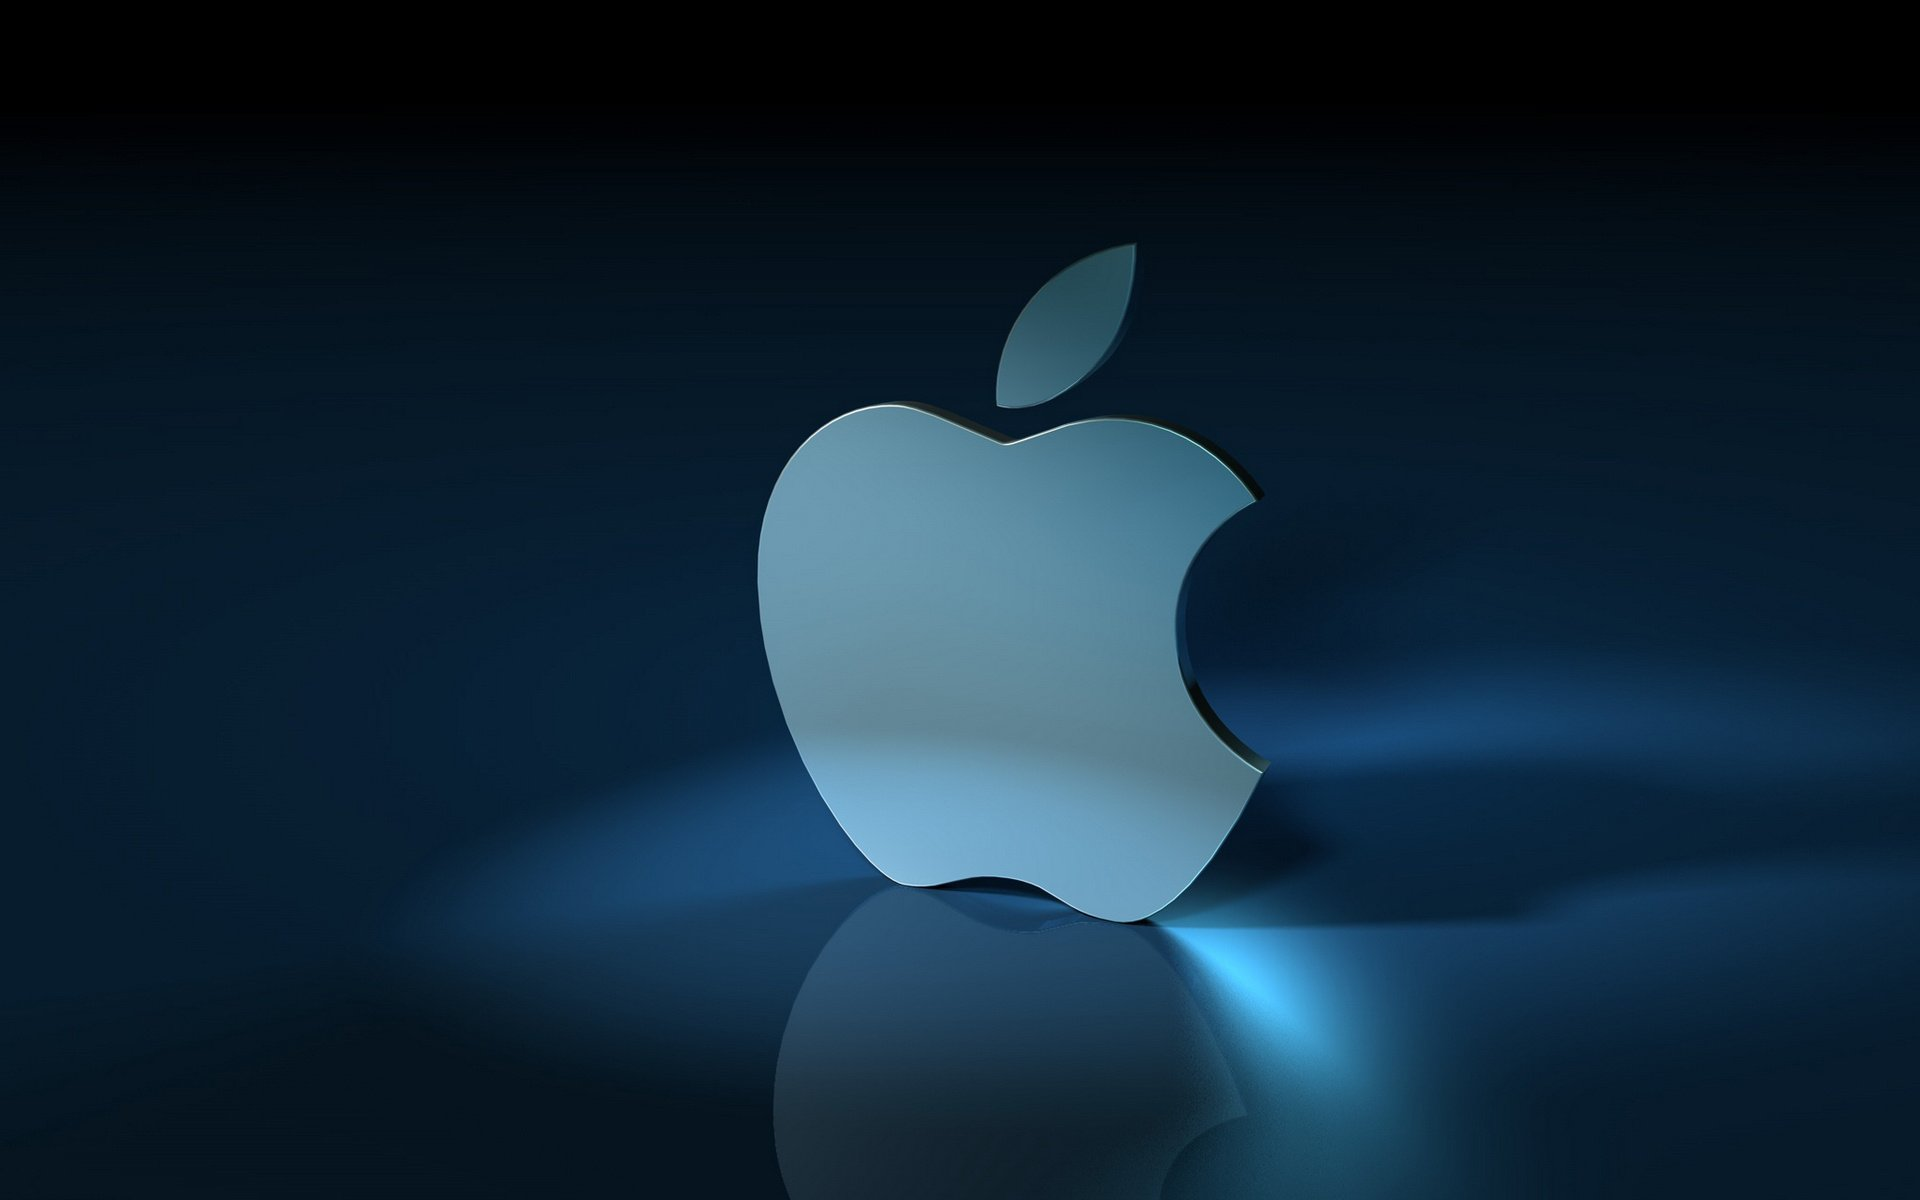 Apple Wallpaper Hd Page 2 De 3 Downloadwallpaper Org